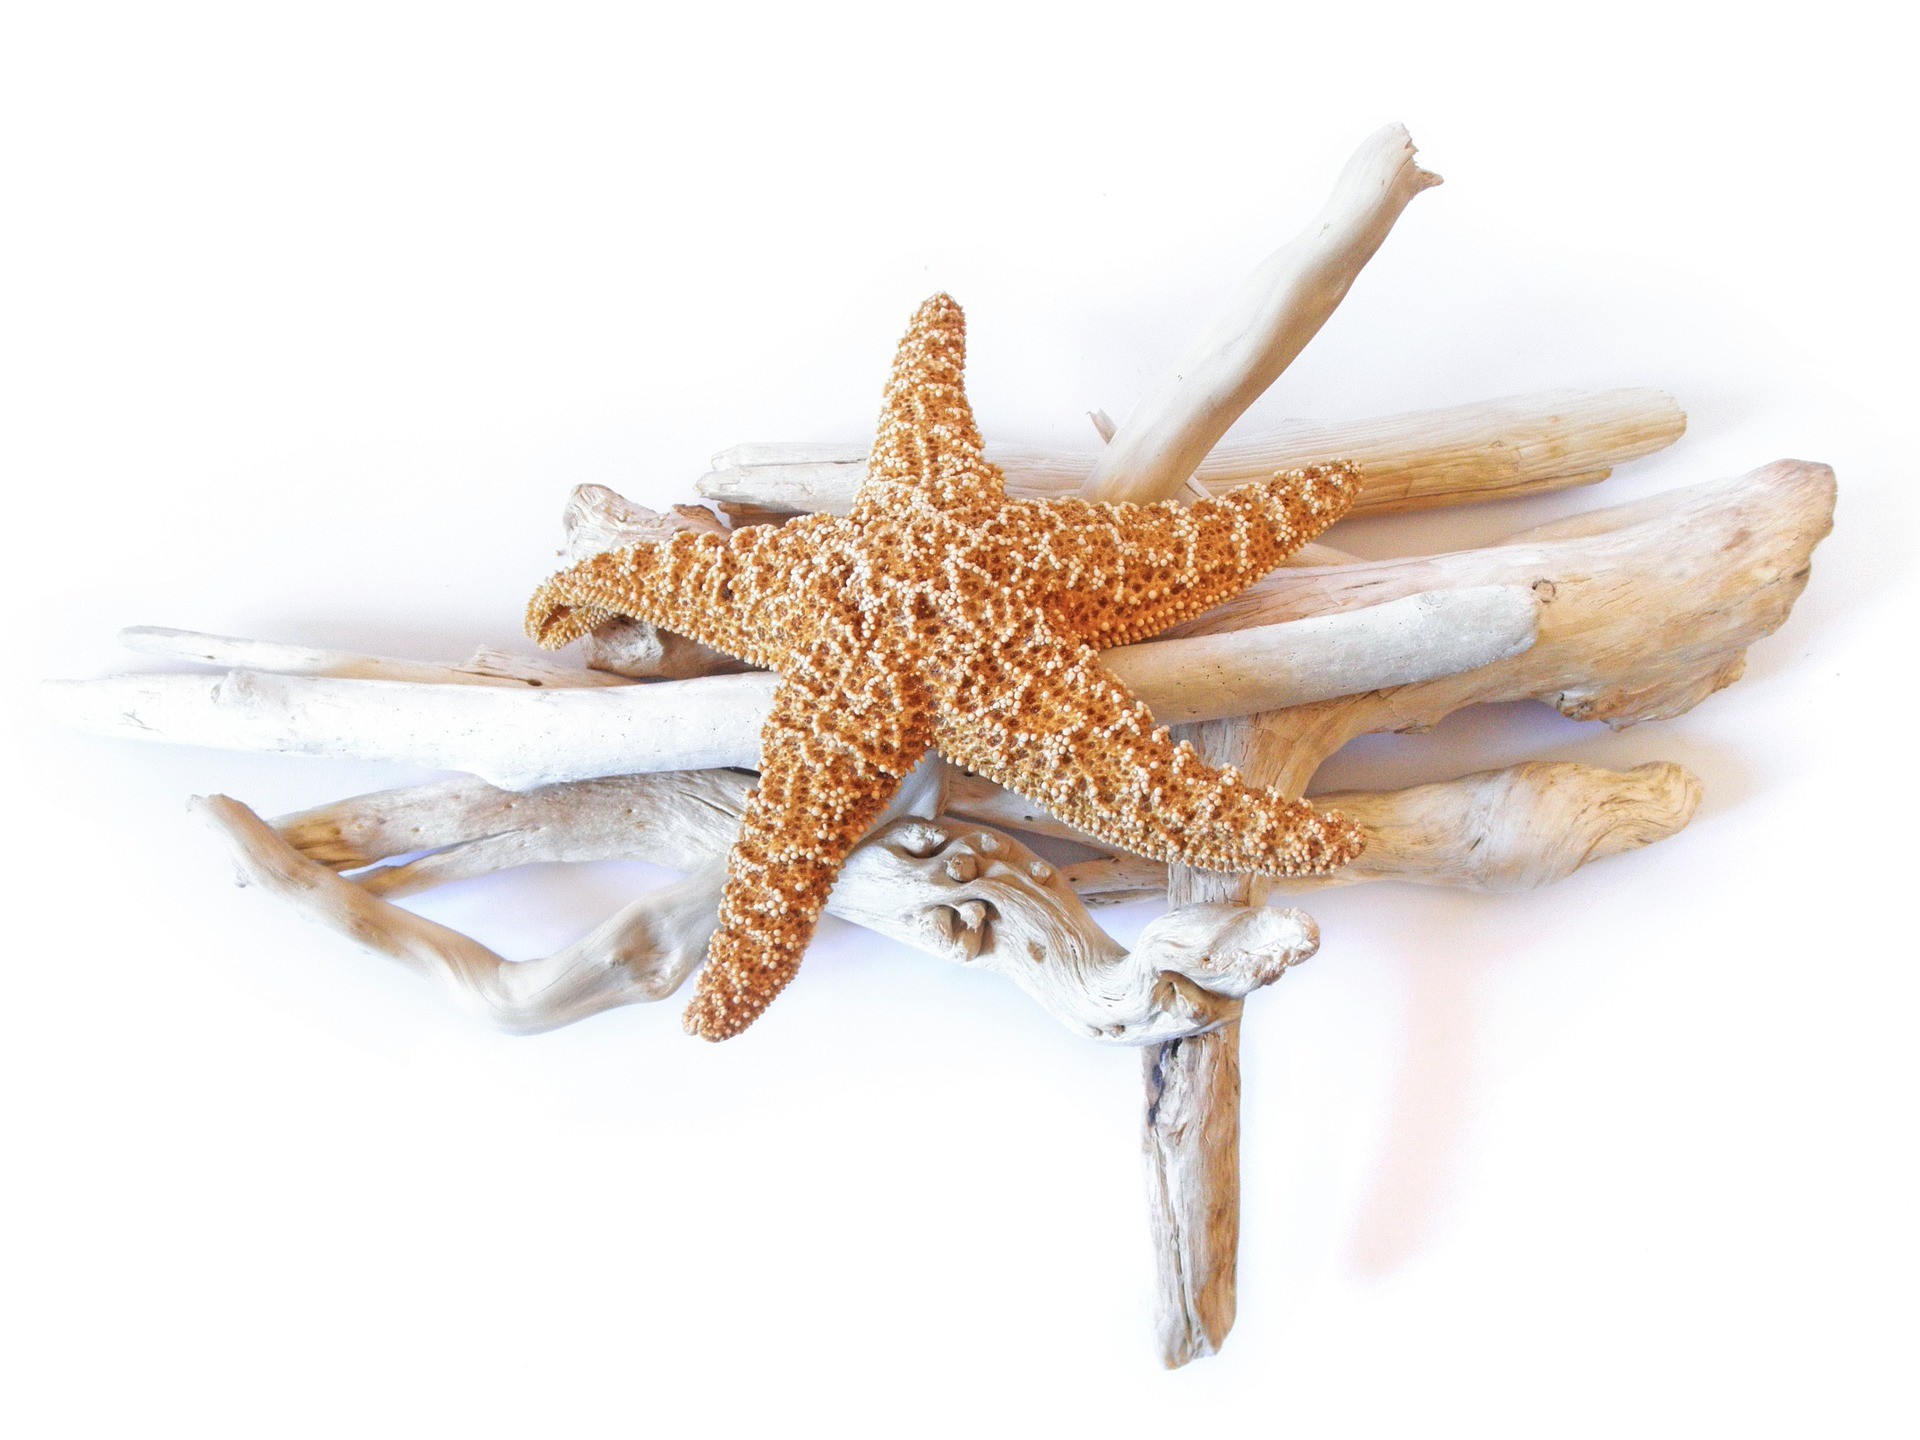 Starfish and Driftwood - My Favourite Beach